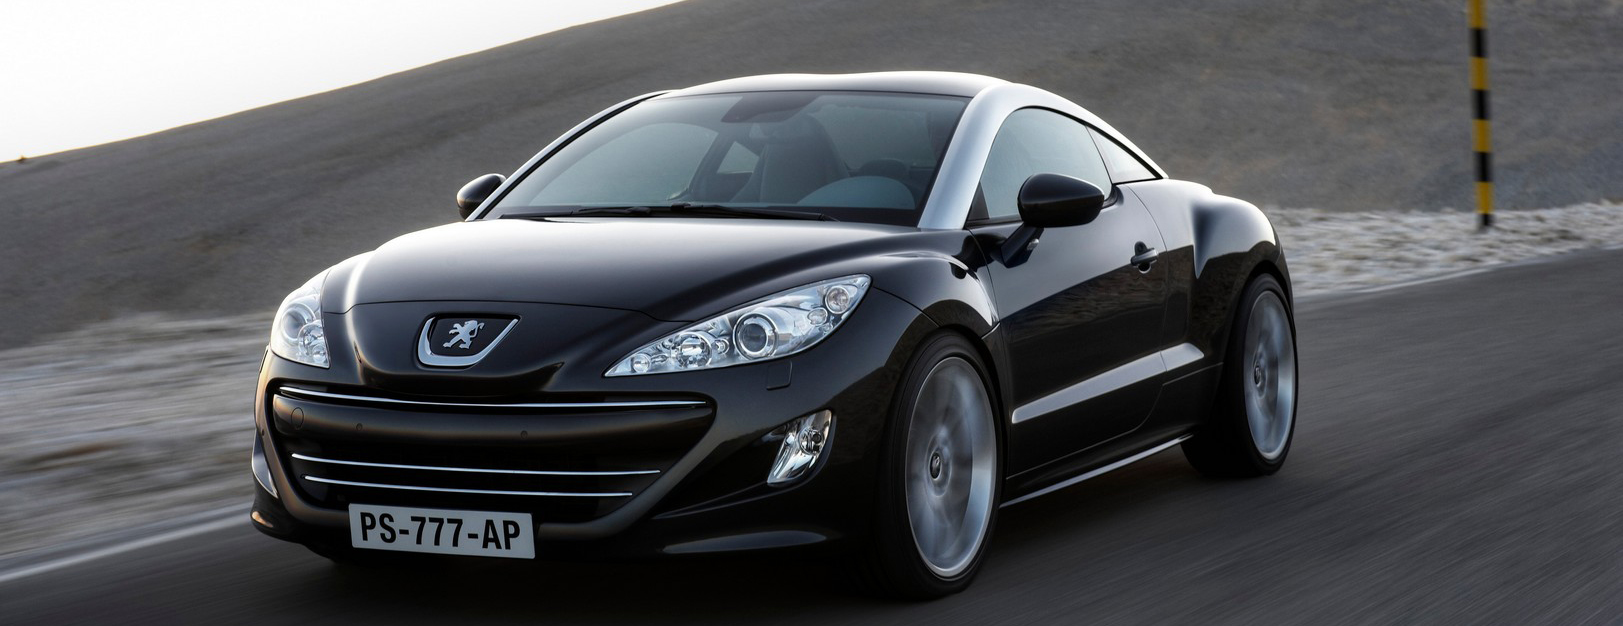 2009 peugeot rcz hdi 163 related infomation specifications weili automotive network. Black Bedroom Furniture Sets. Home Design Ideas